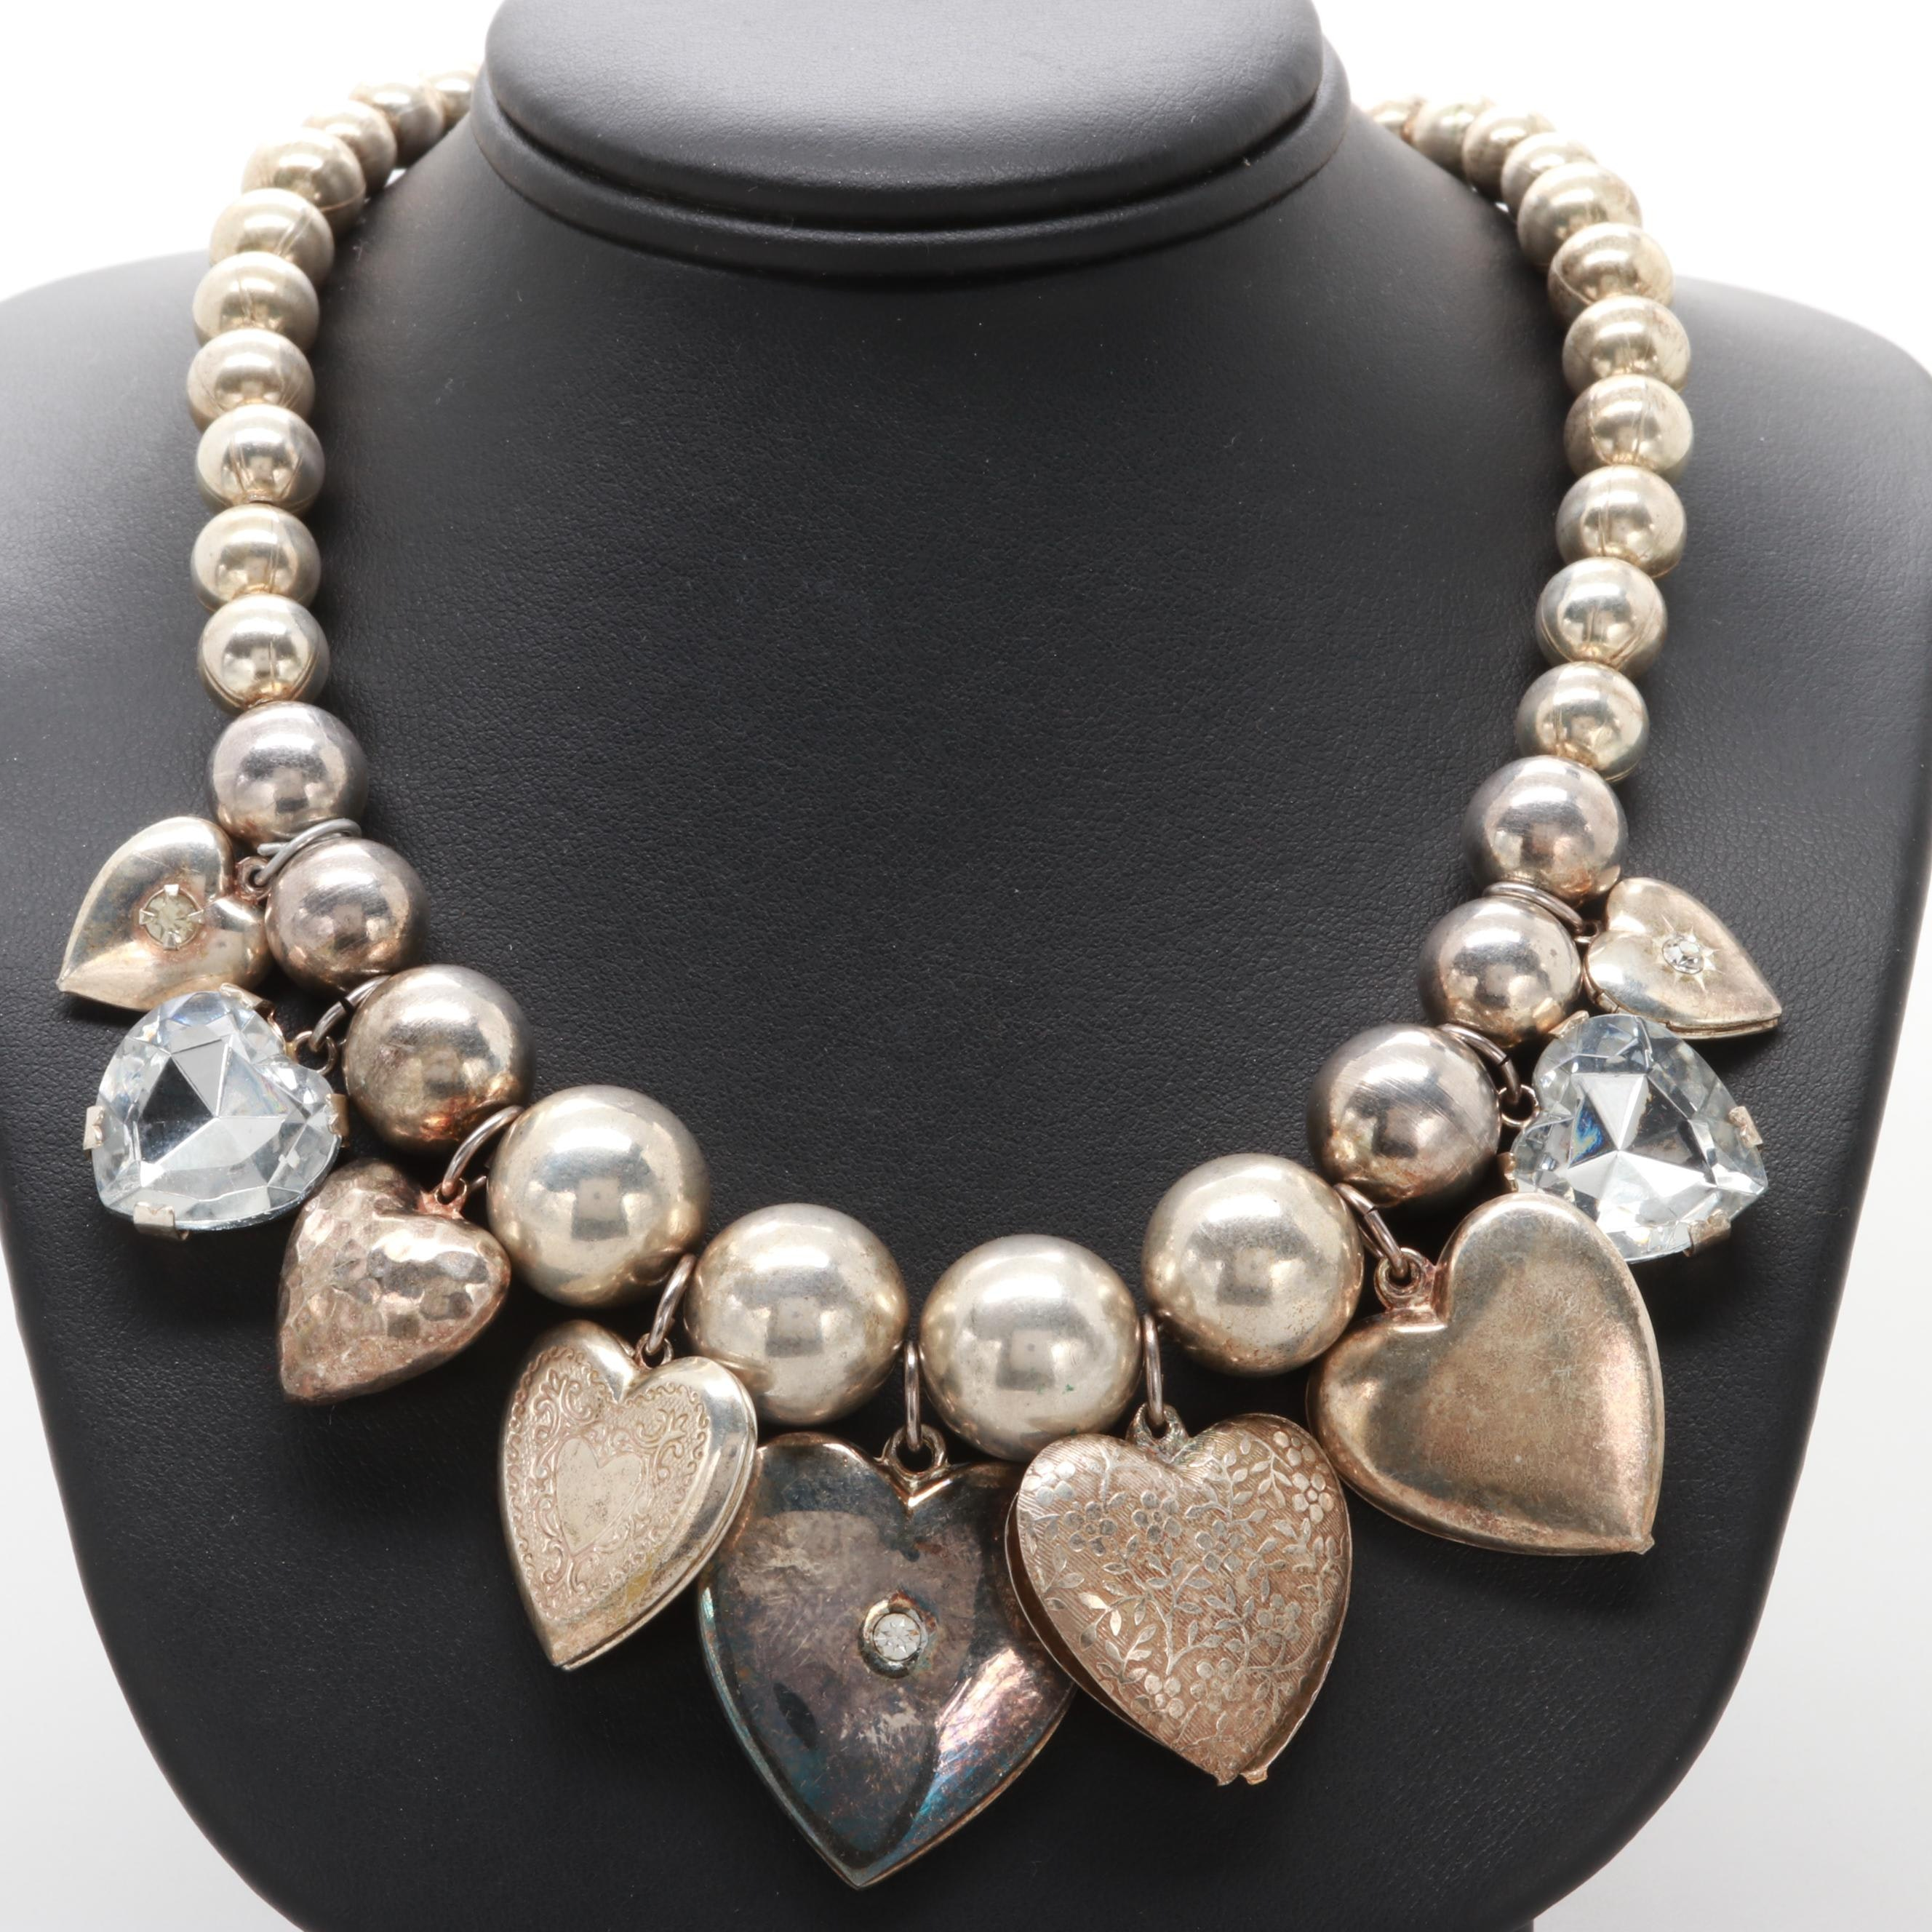 Silver Tone Faceted Glass Heart Motif Necklace